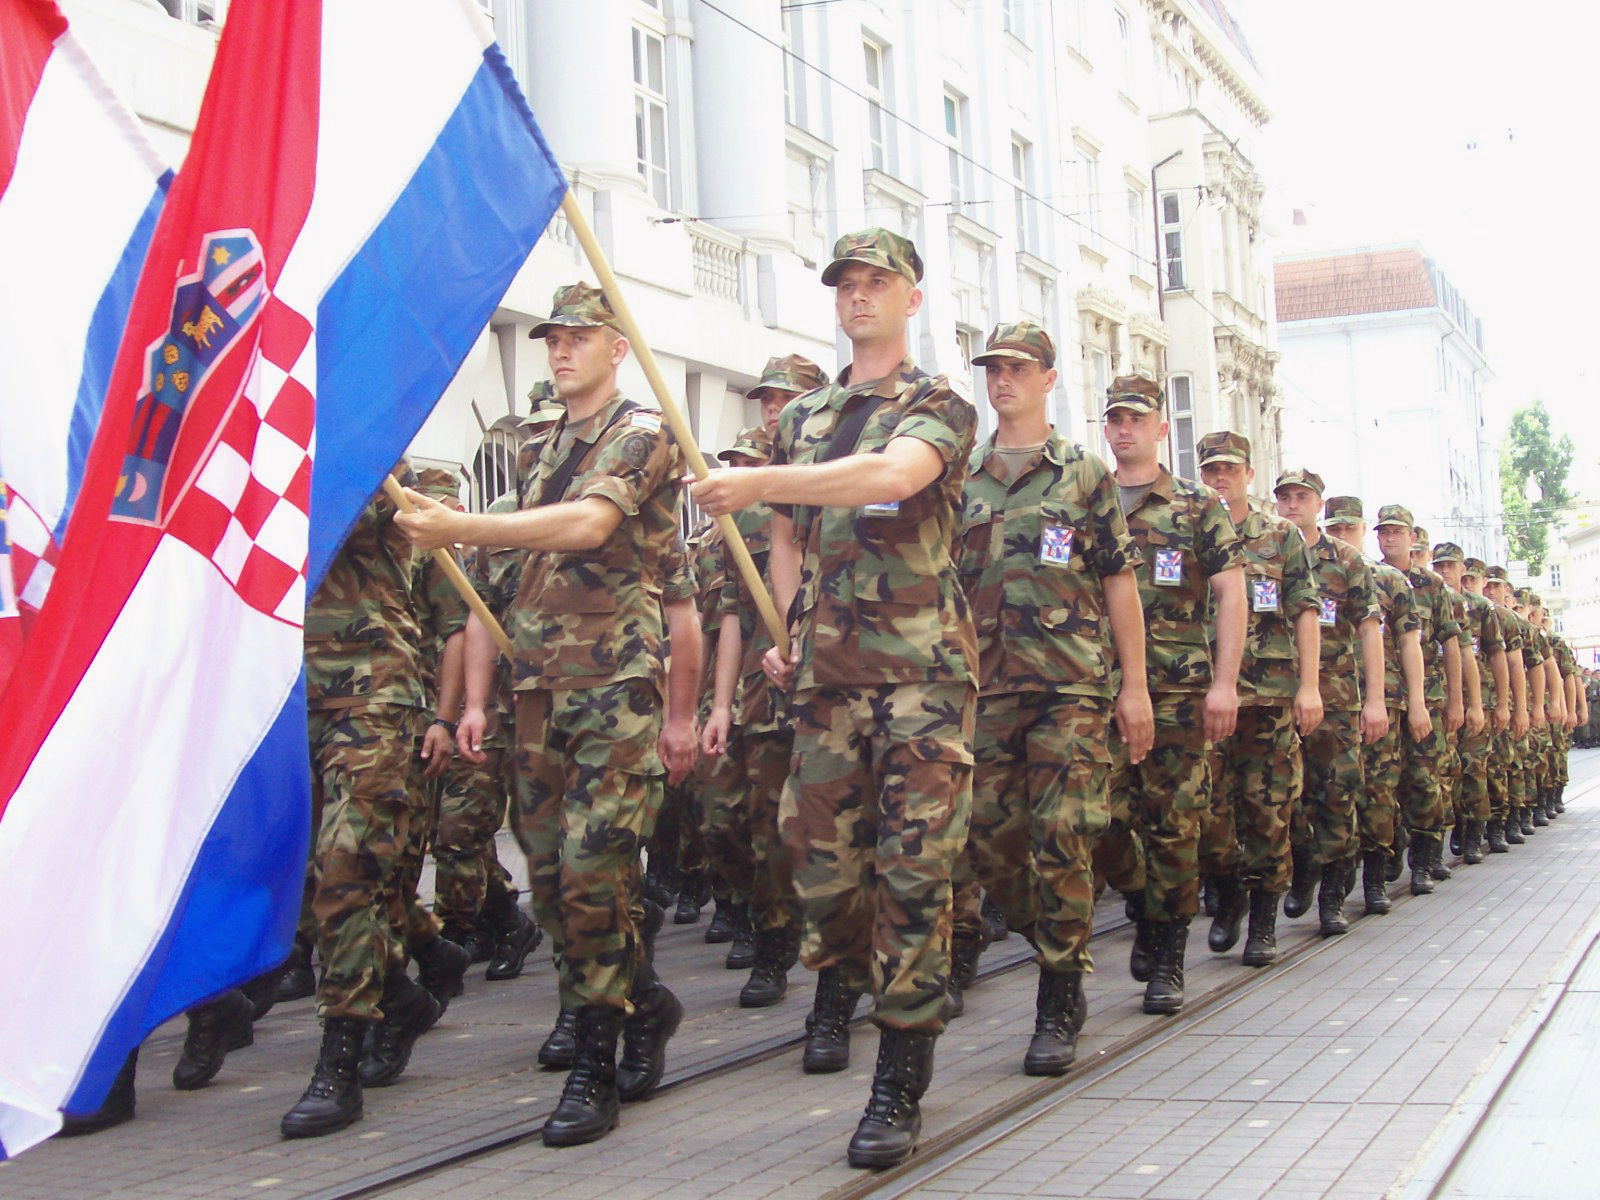 Josipovic claims Croatia is not introducing reserve forces beacuse of Ukraine